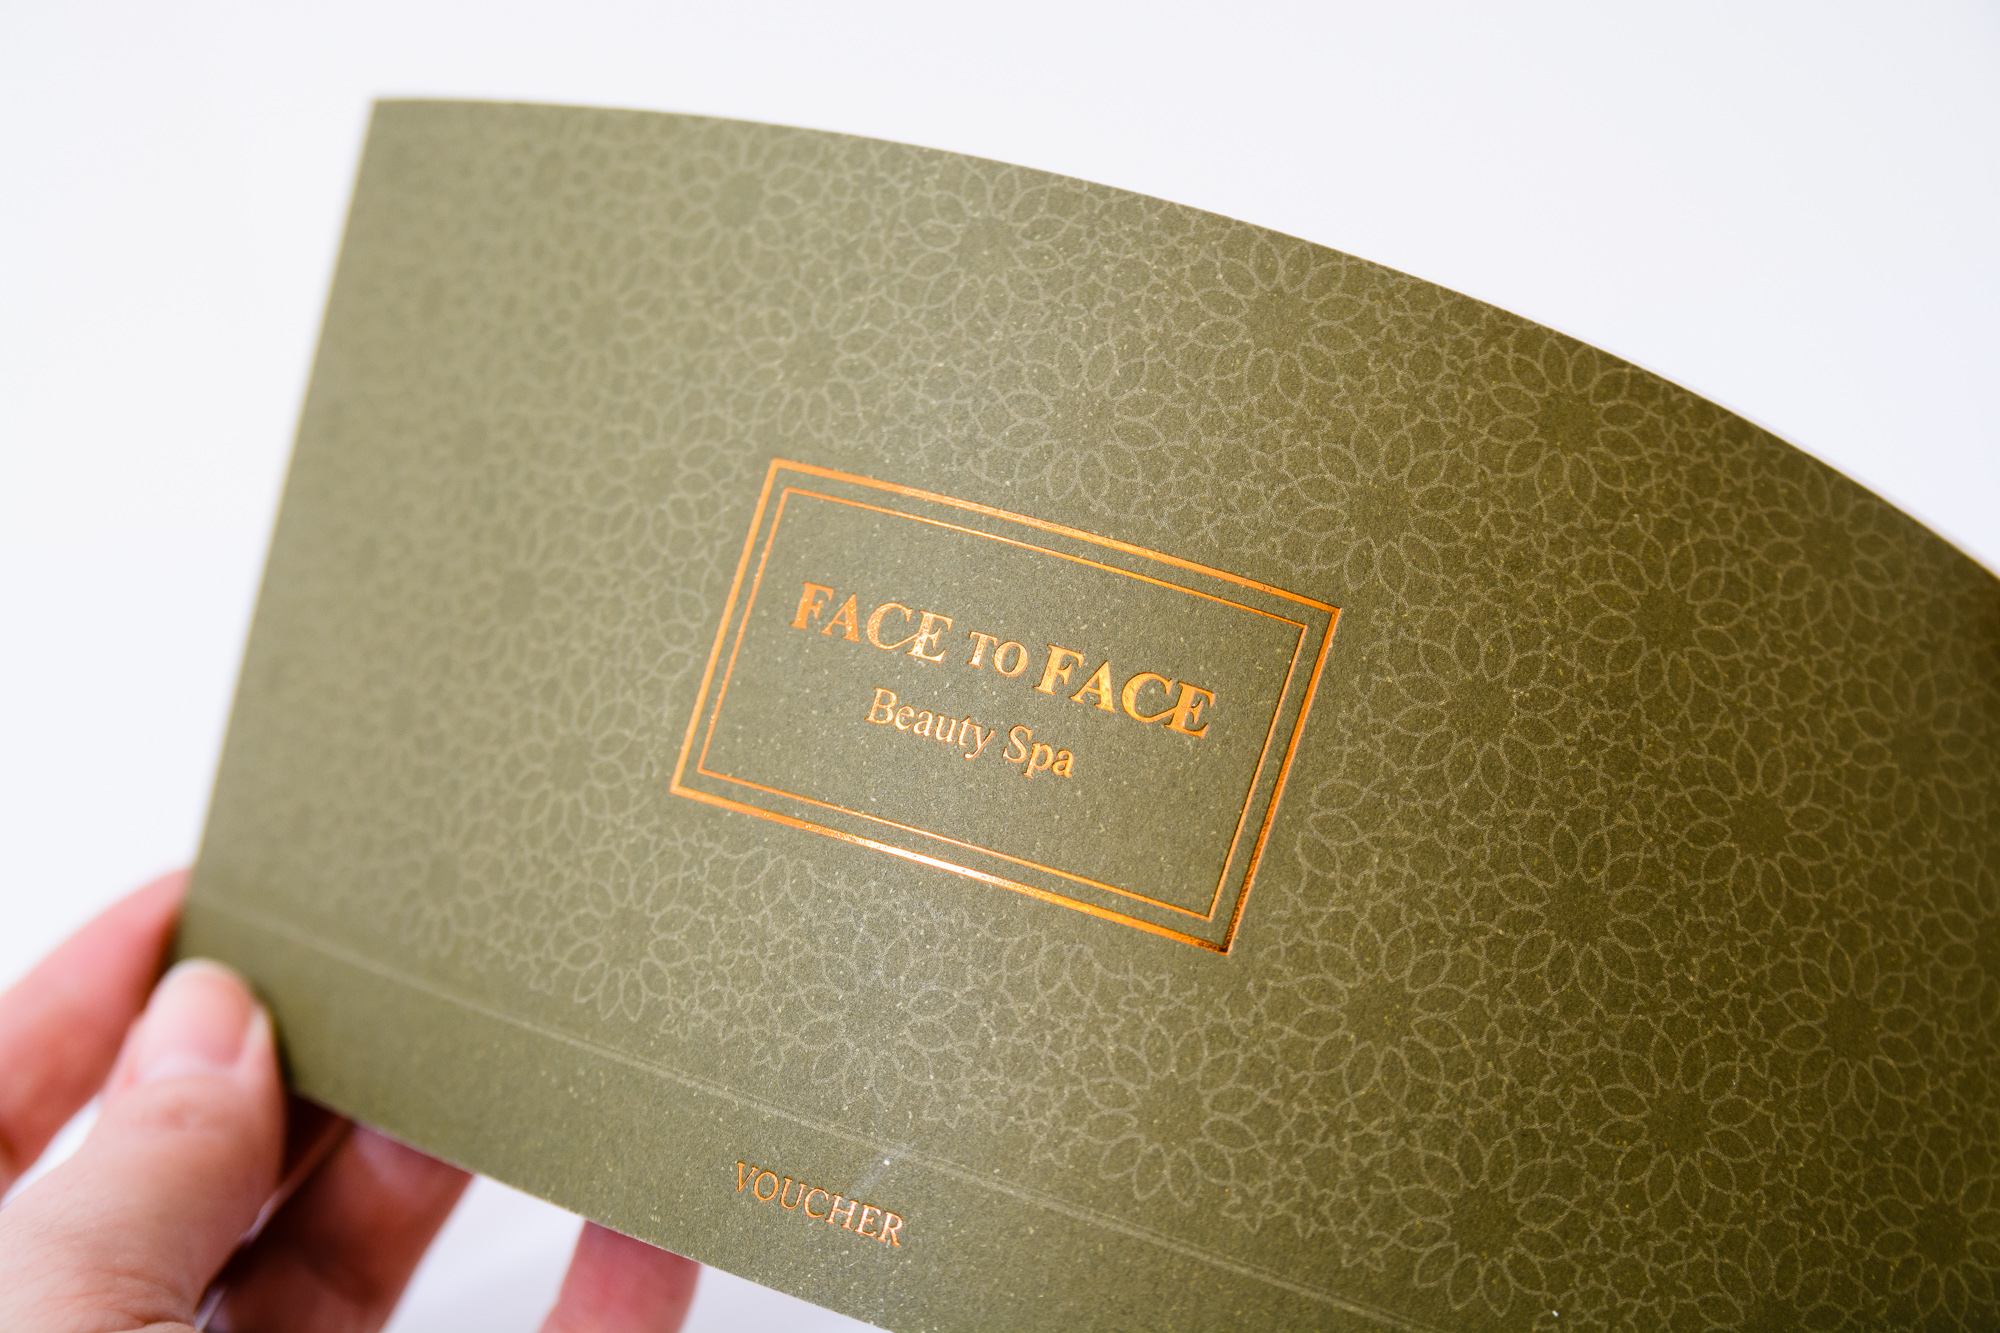 Face to face foil brochure – Geo & Co creative